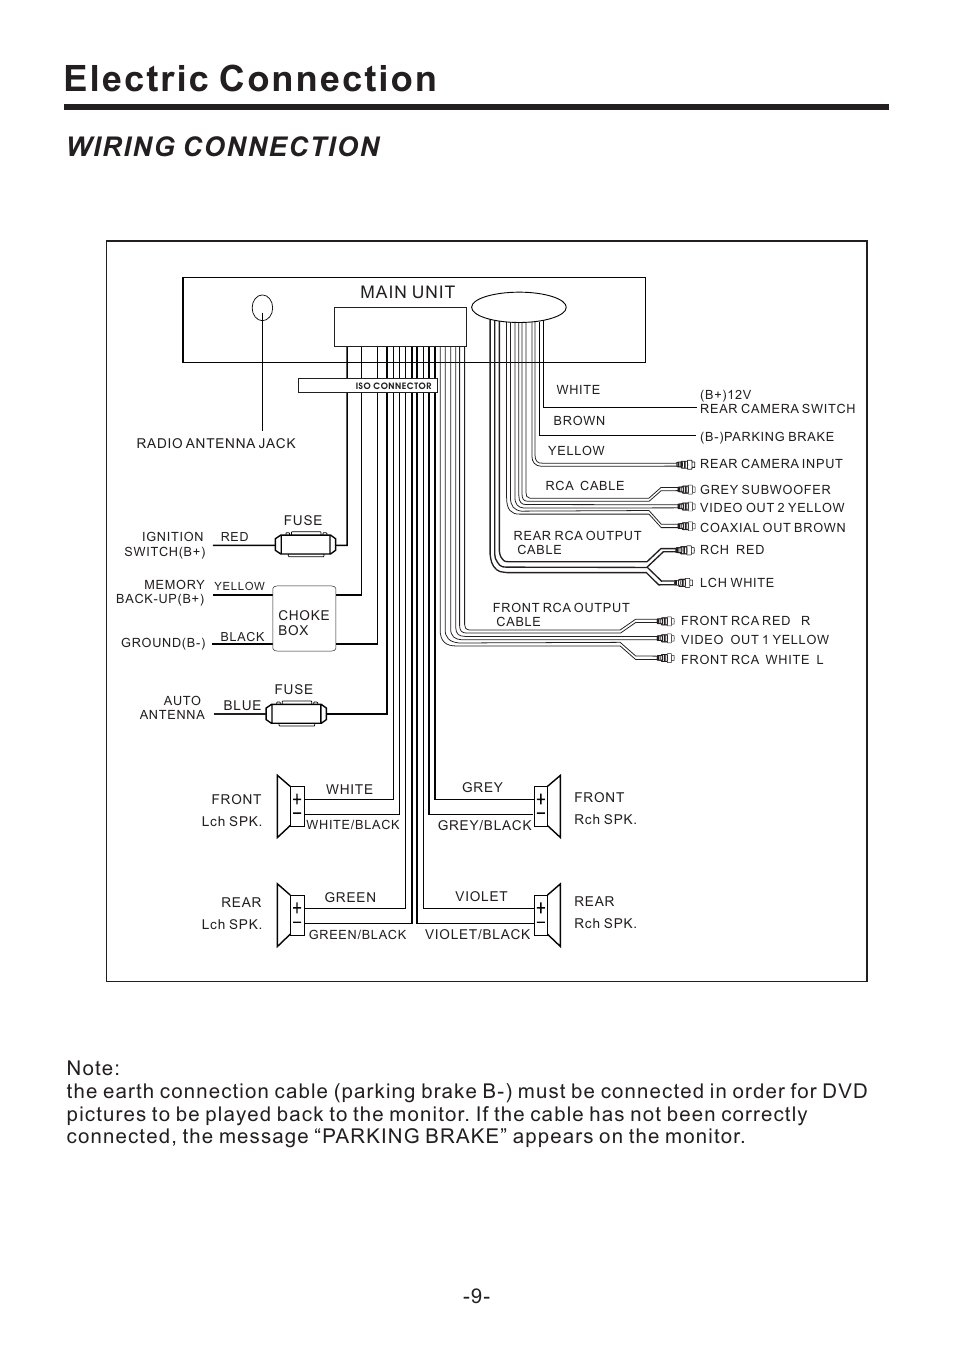 medium resolution of wiring diagram for pyle pld71mu wiring diagram official electric connection wiring connection main unit